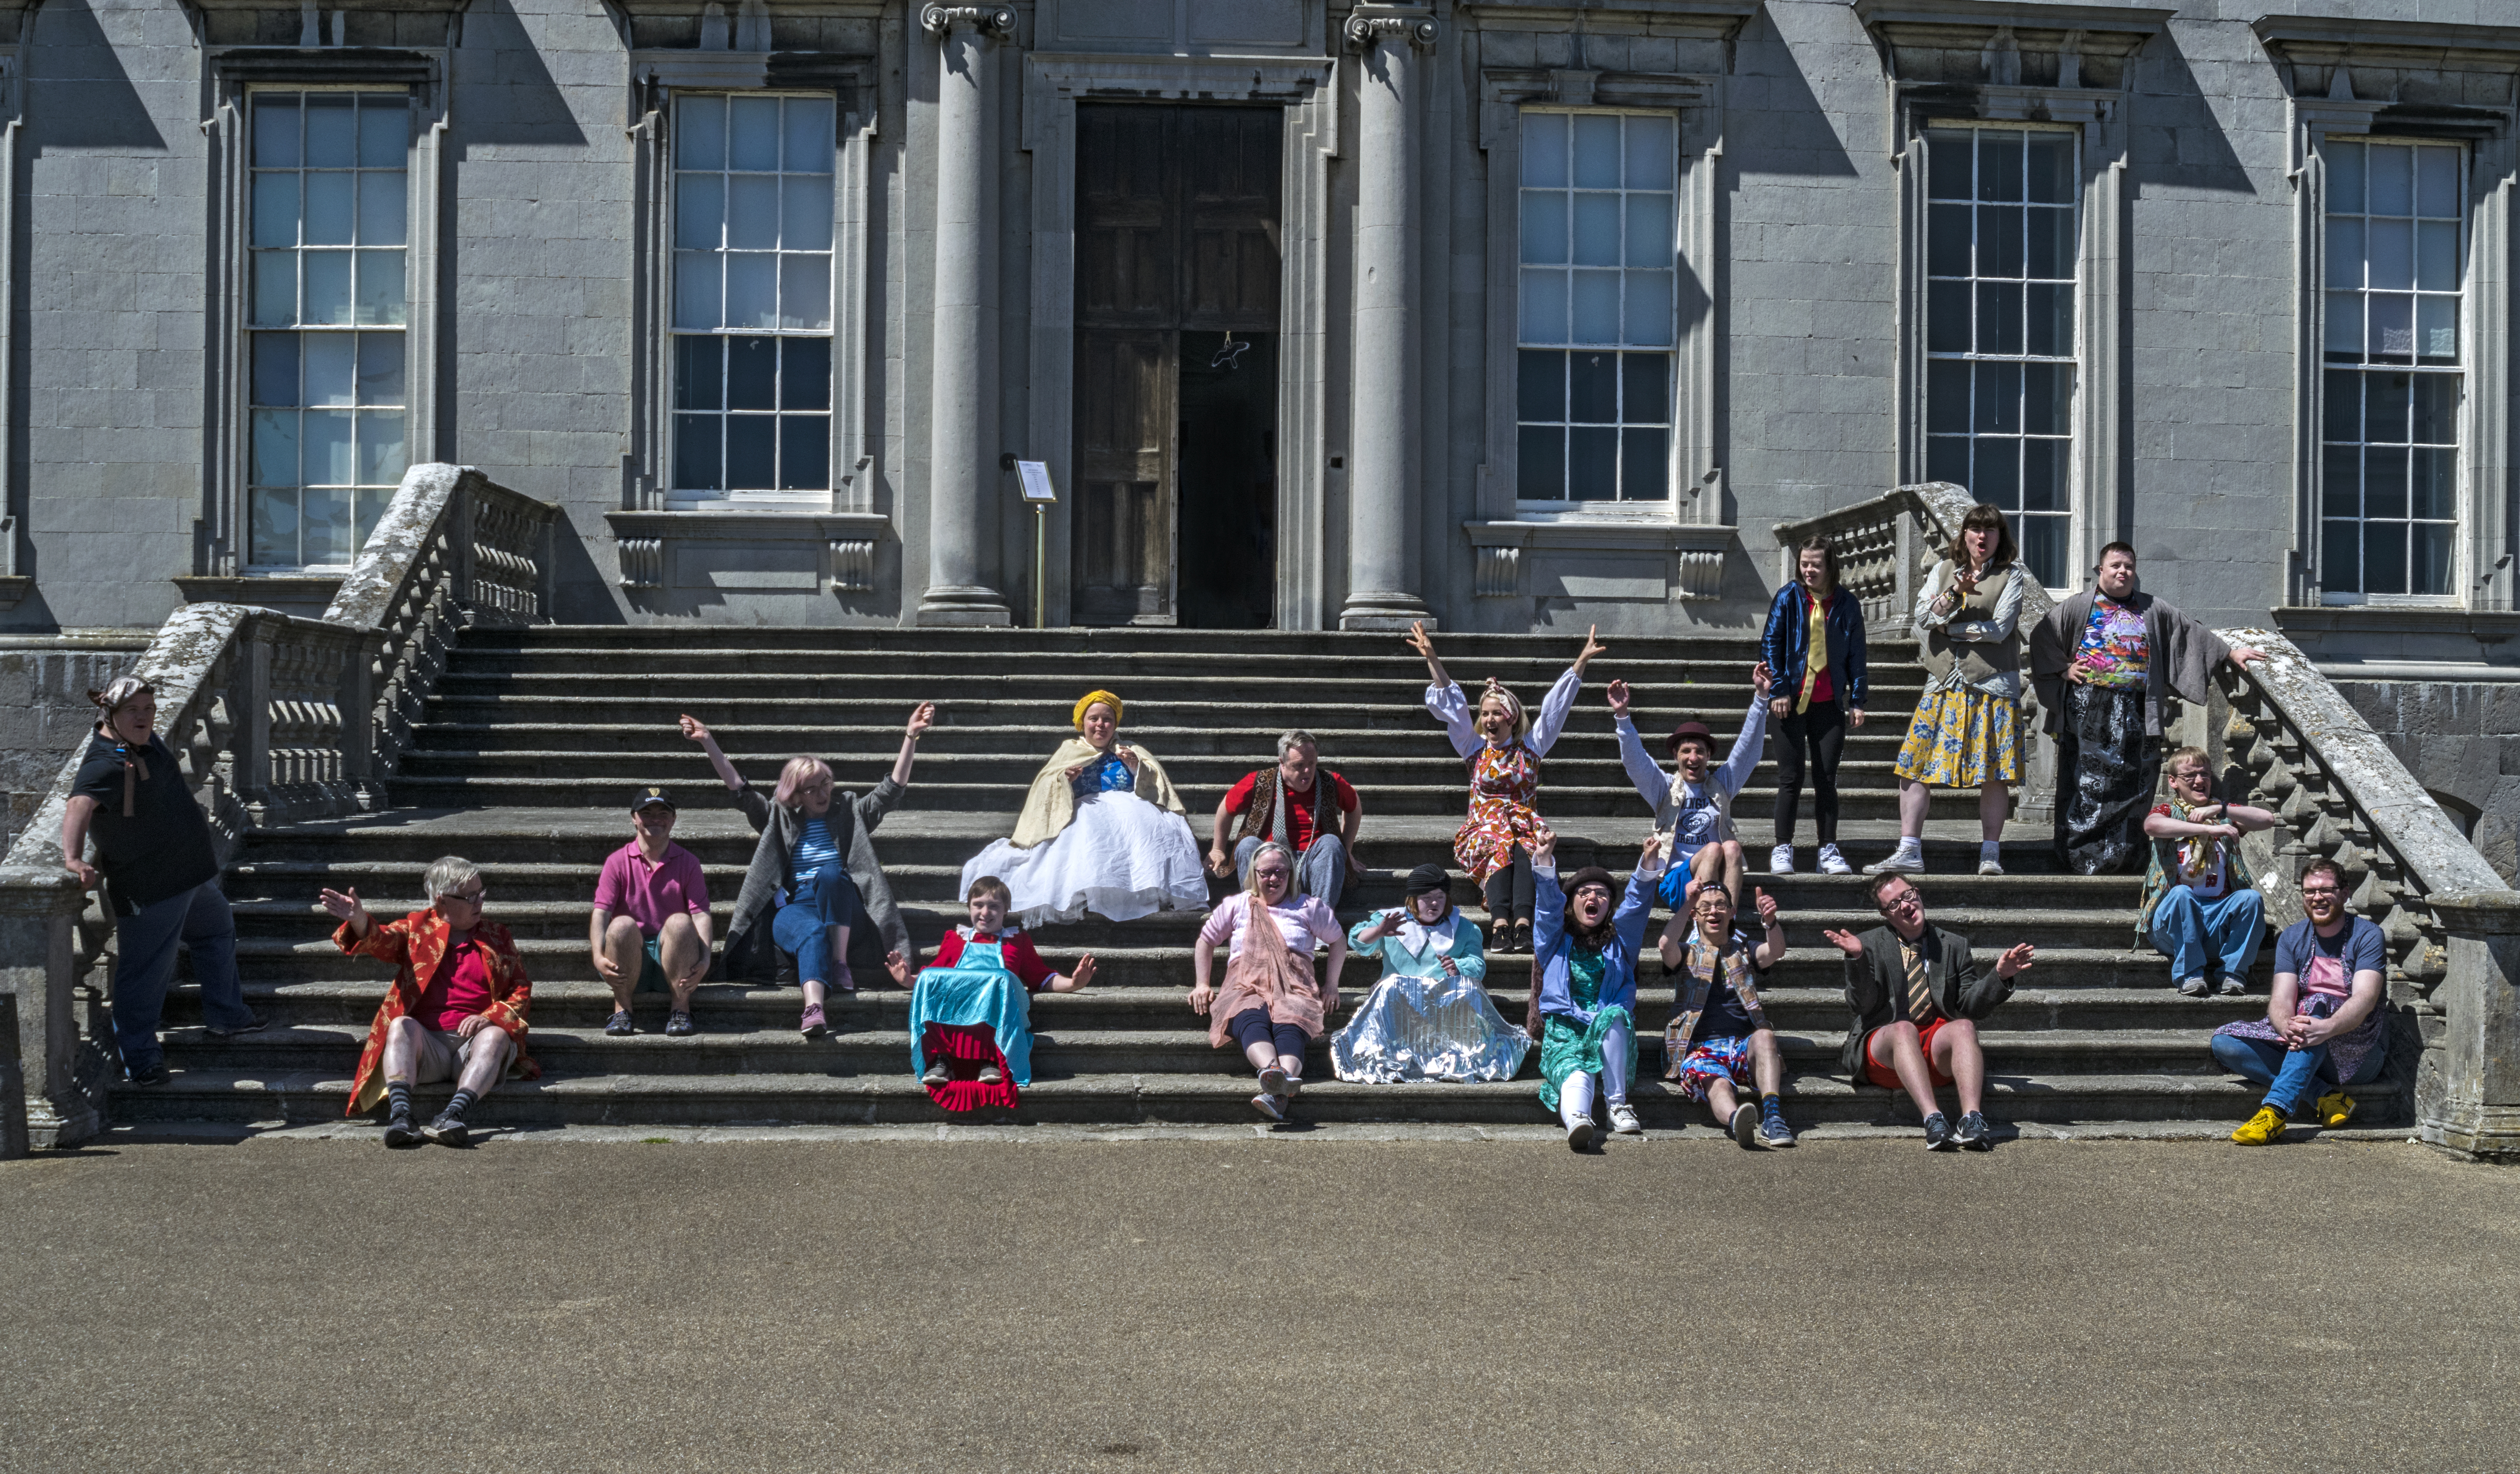 run-of-the-mill-theatre-matsterclass-of-2019-castletown-house-image-by-vincent-lillis